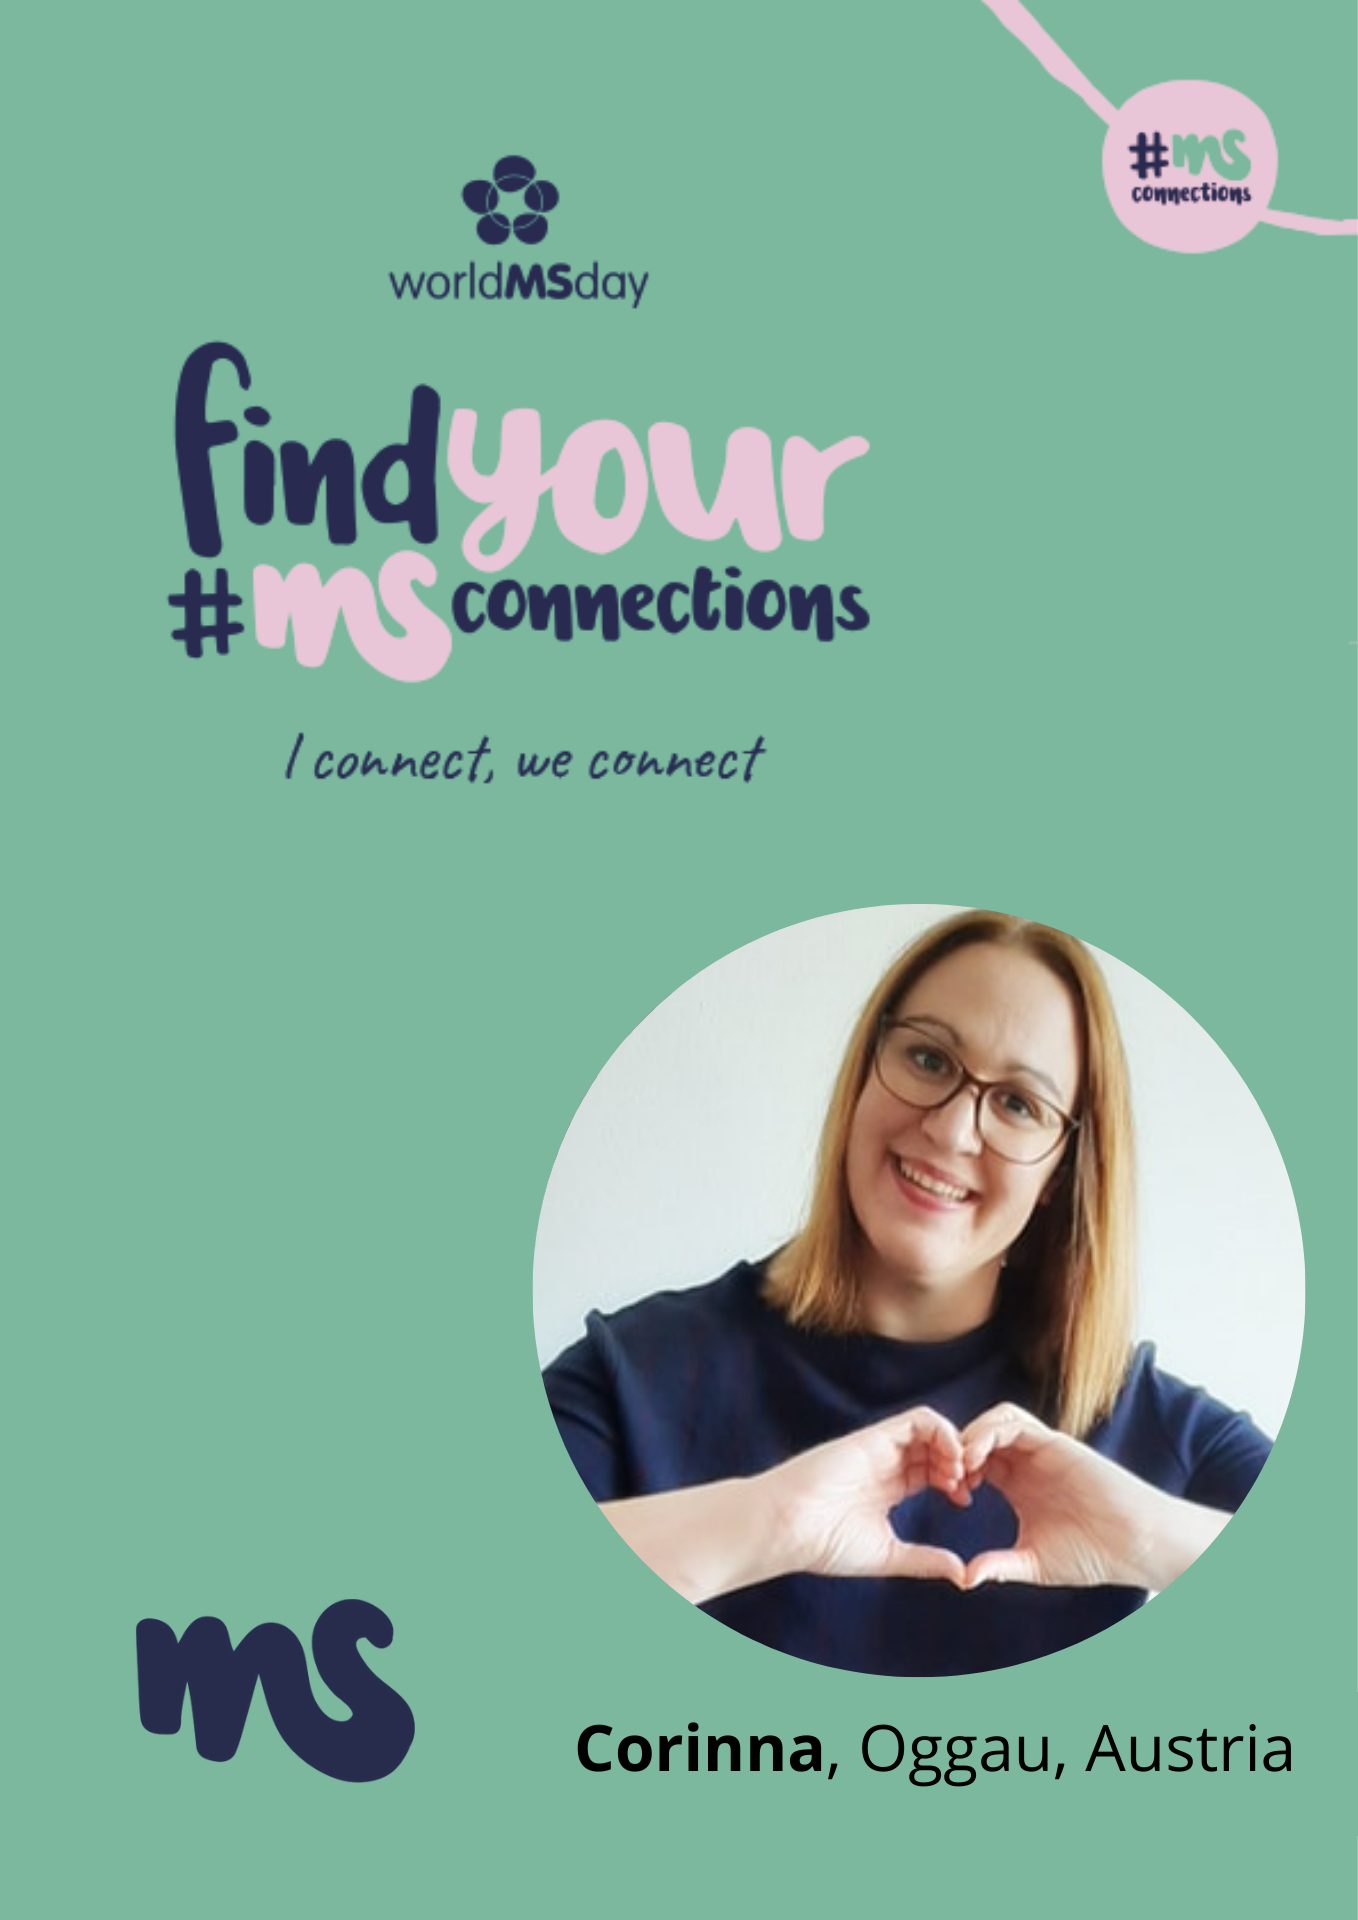 türkises Rechteck mit Bild von Corinna, Oggau, Austria, Text: find your #MSConnections